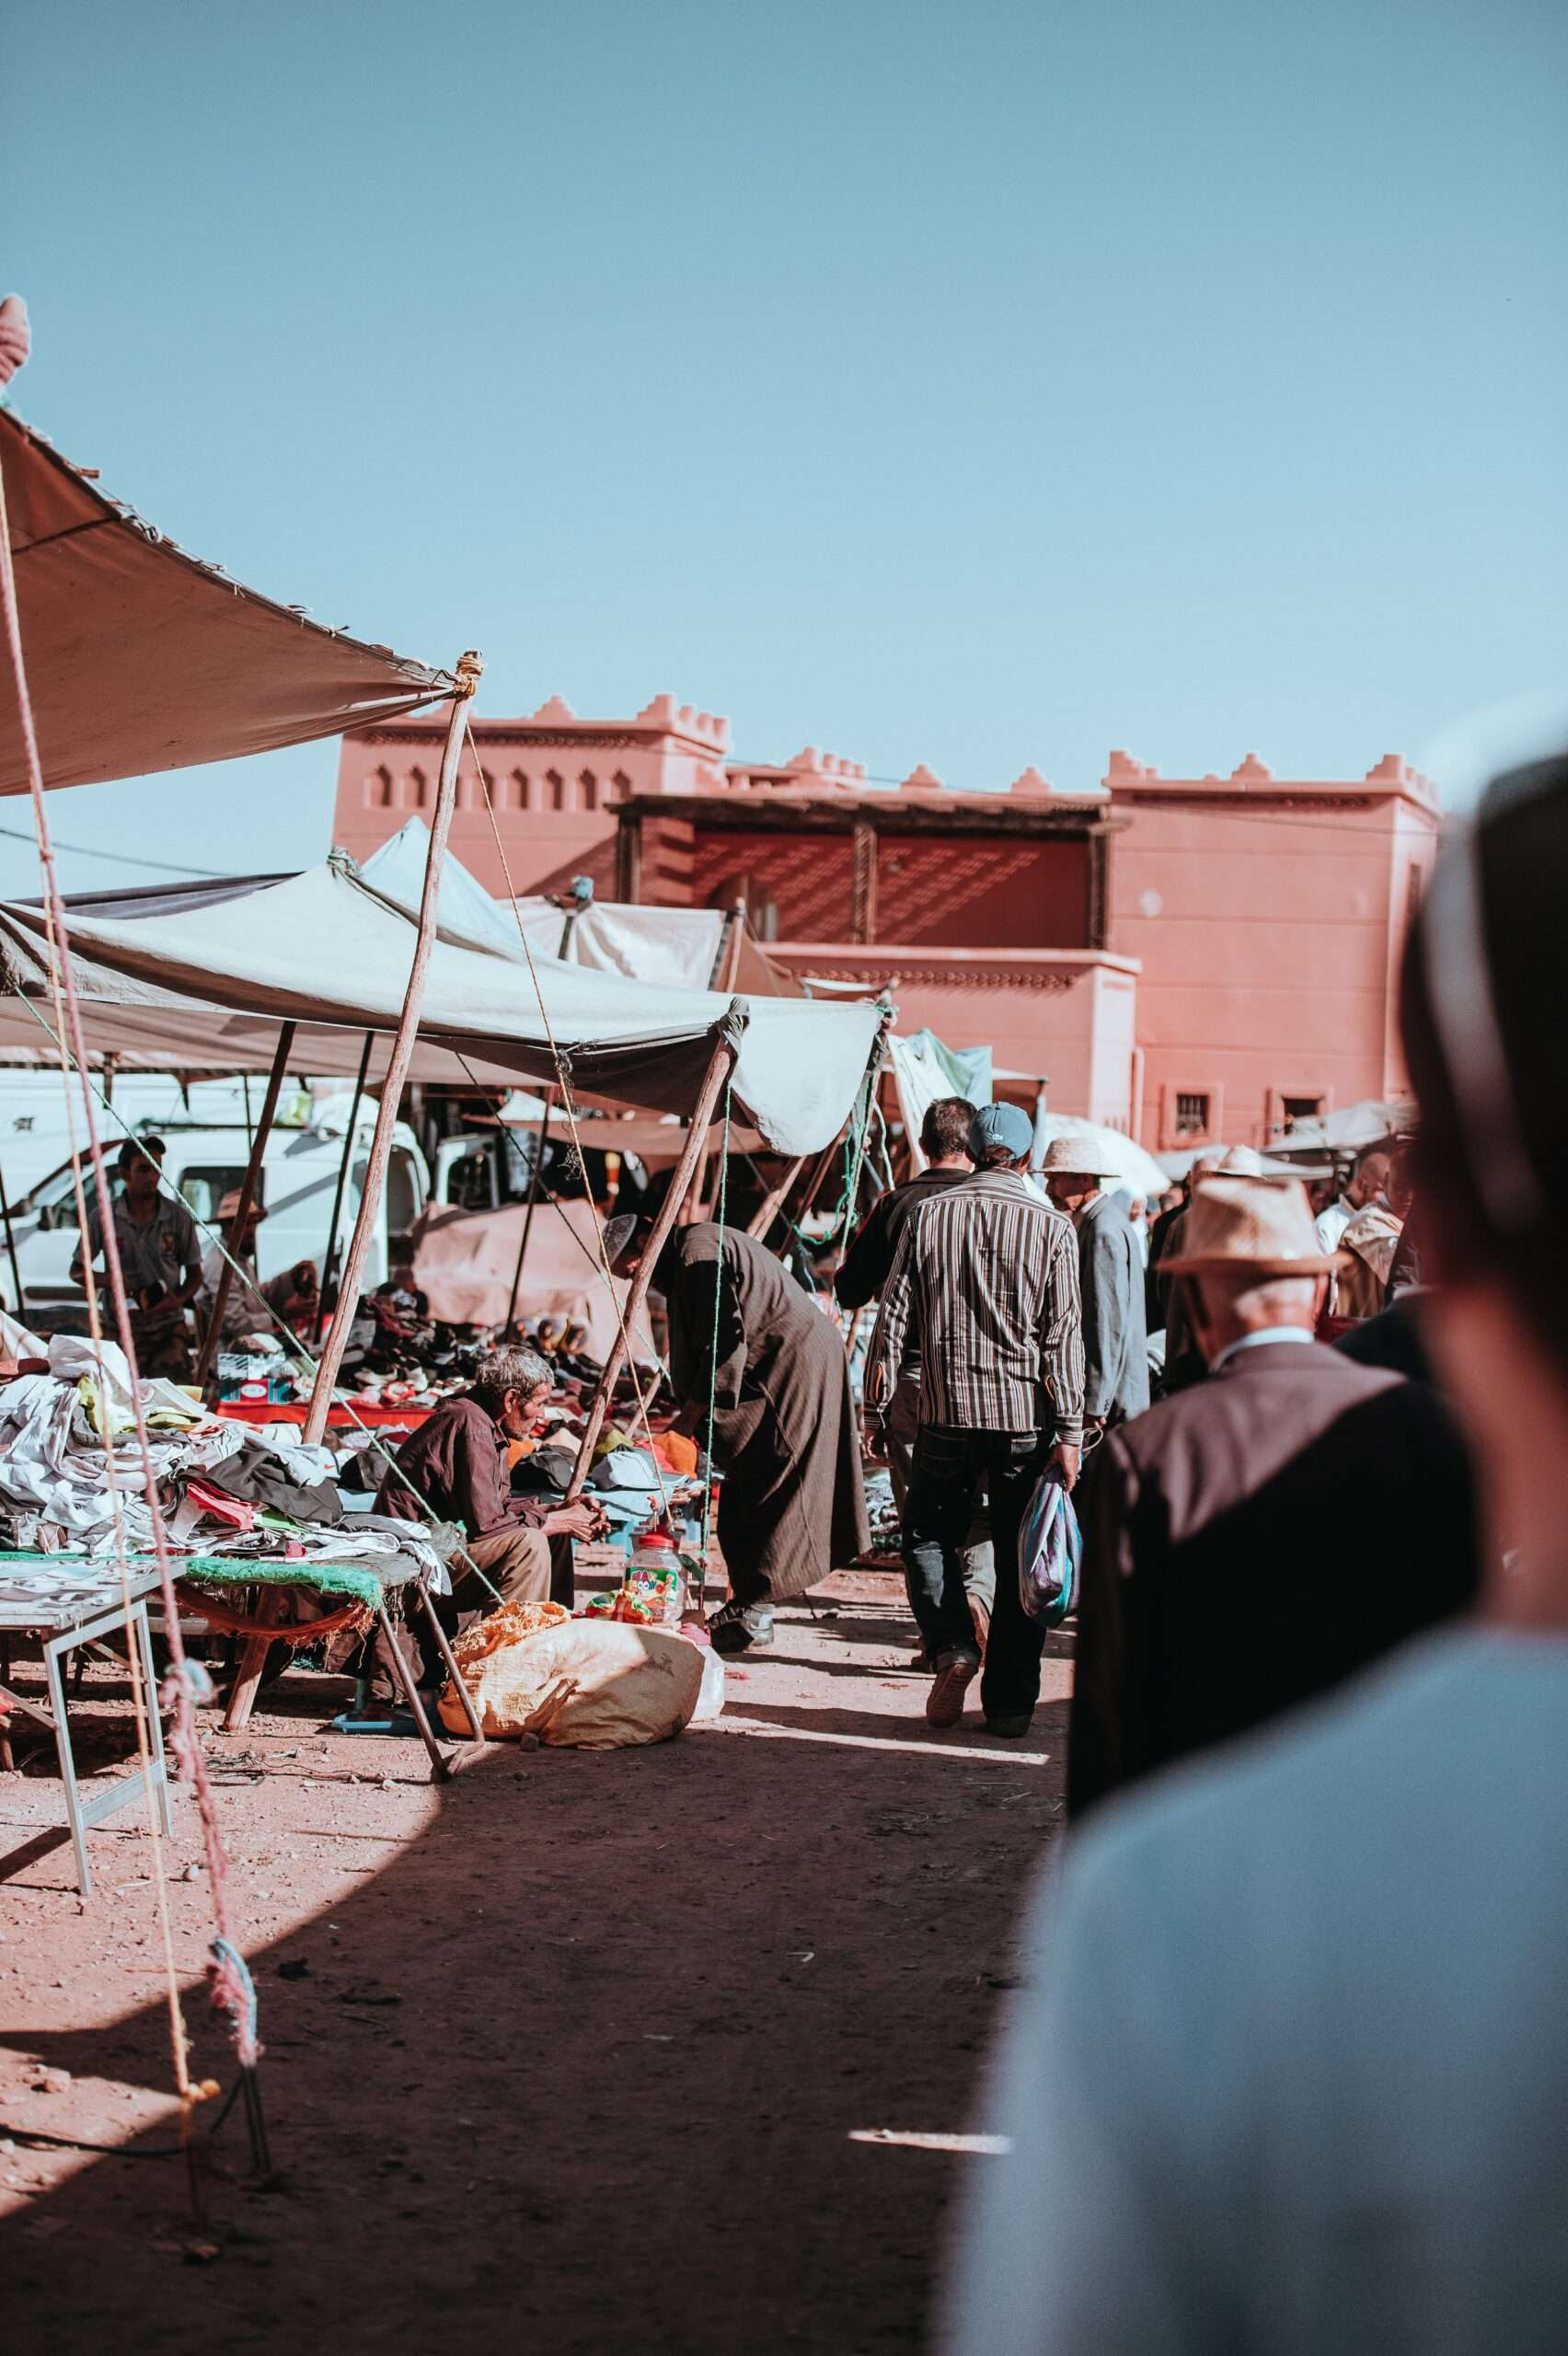 markets in Marrakesh selling Moroccan rugs